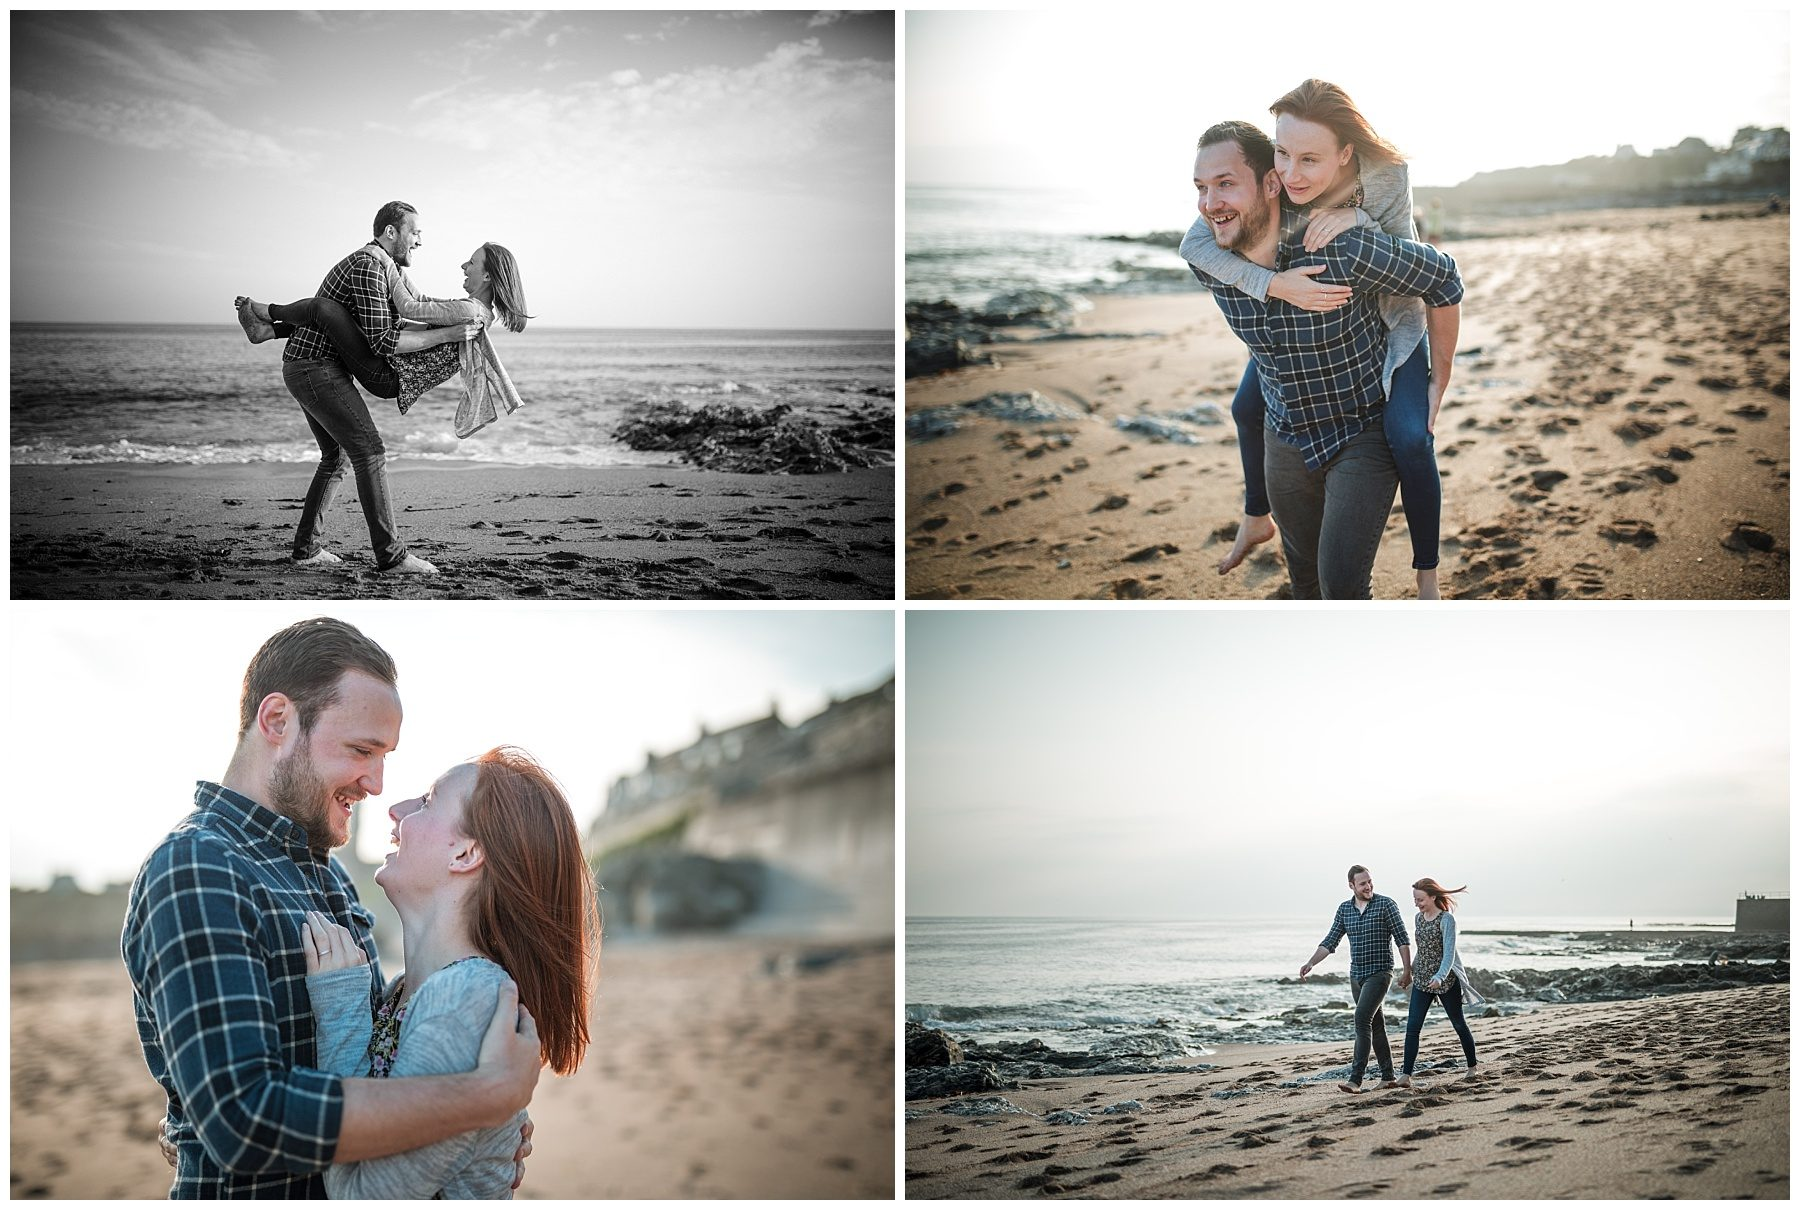 couple photography on beach in Cornwall